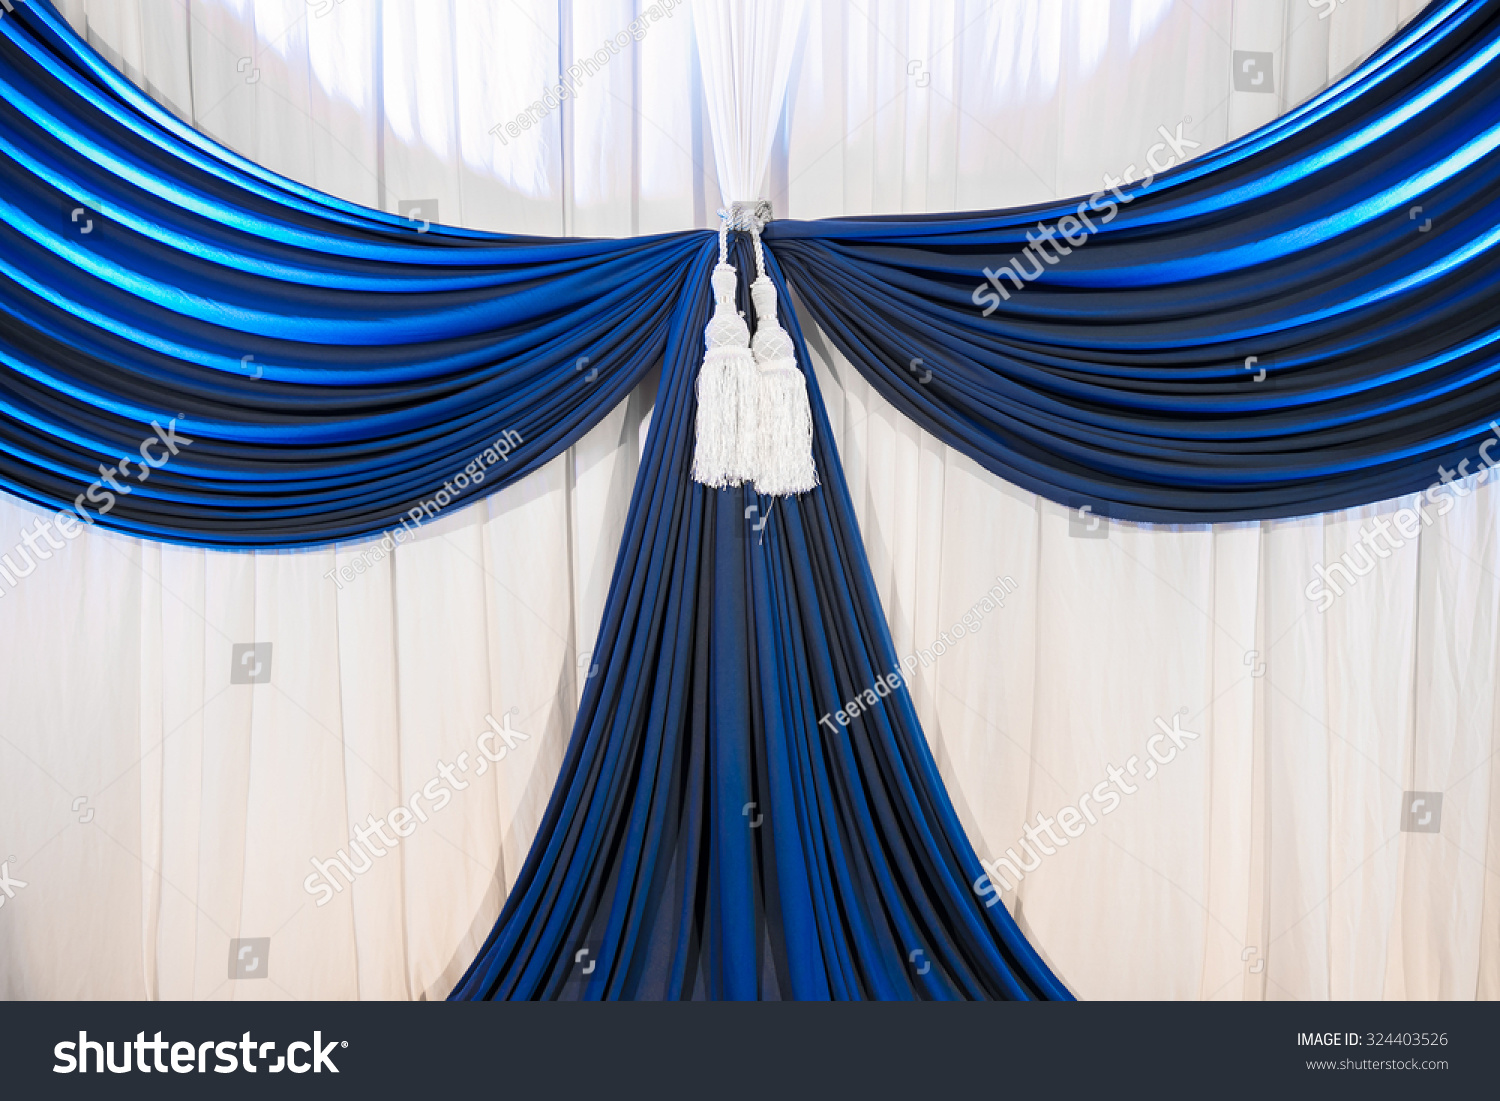 Blue curtain backdrop - White And Blue Curtain Backdrop Background For Wedding